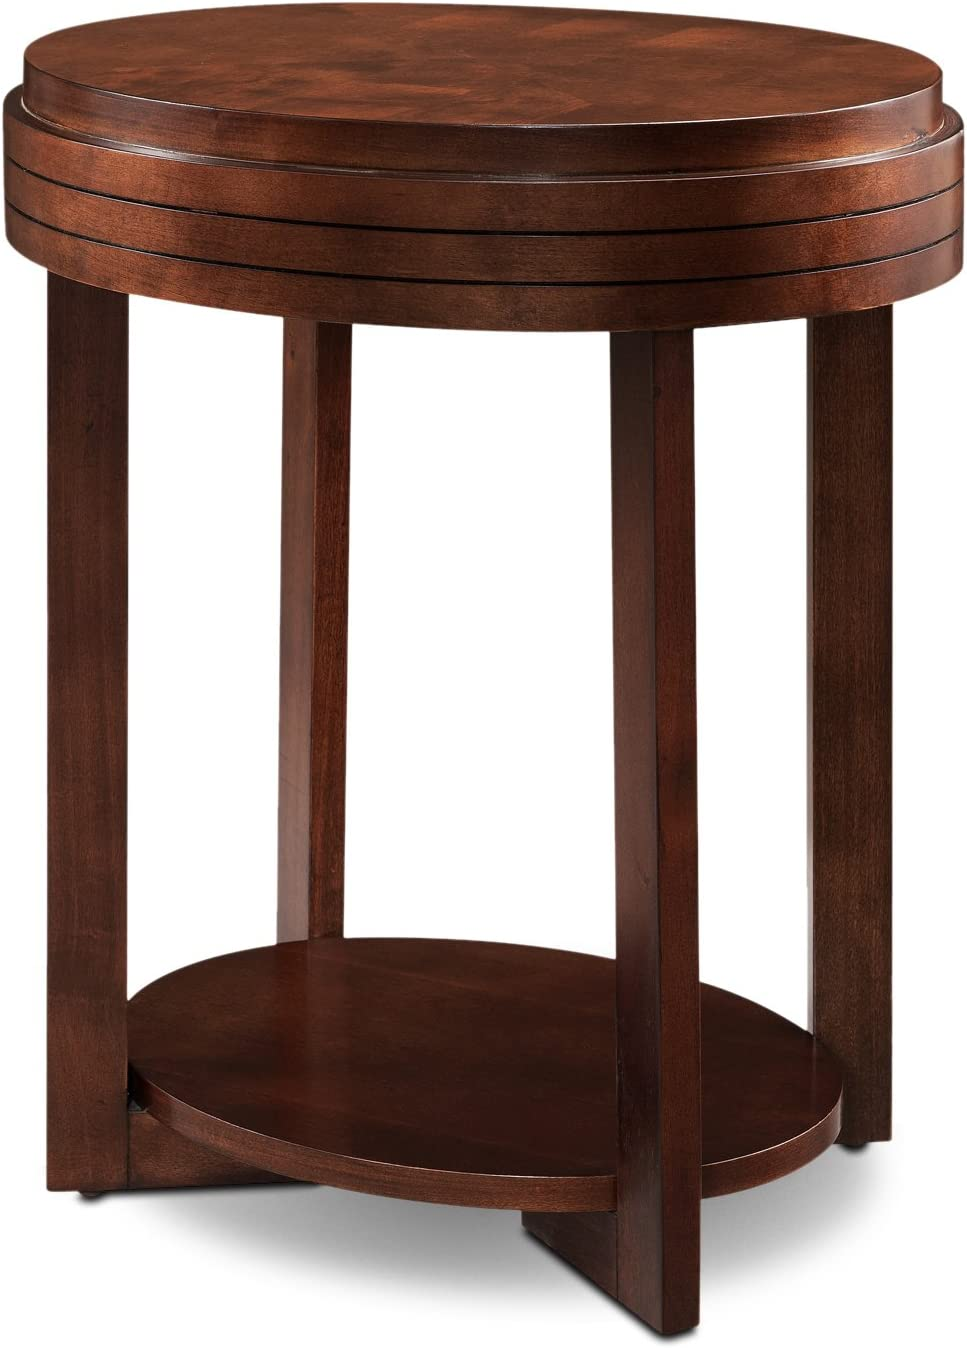 Leick Favorite Finds End Table